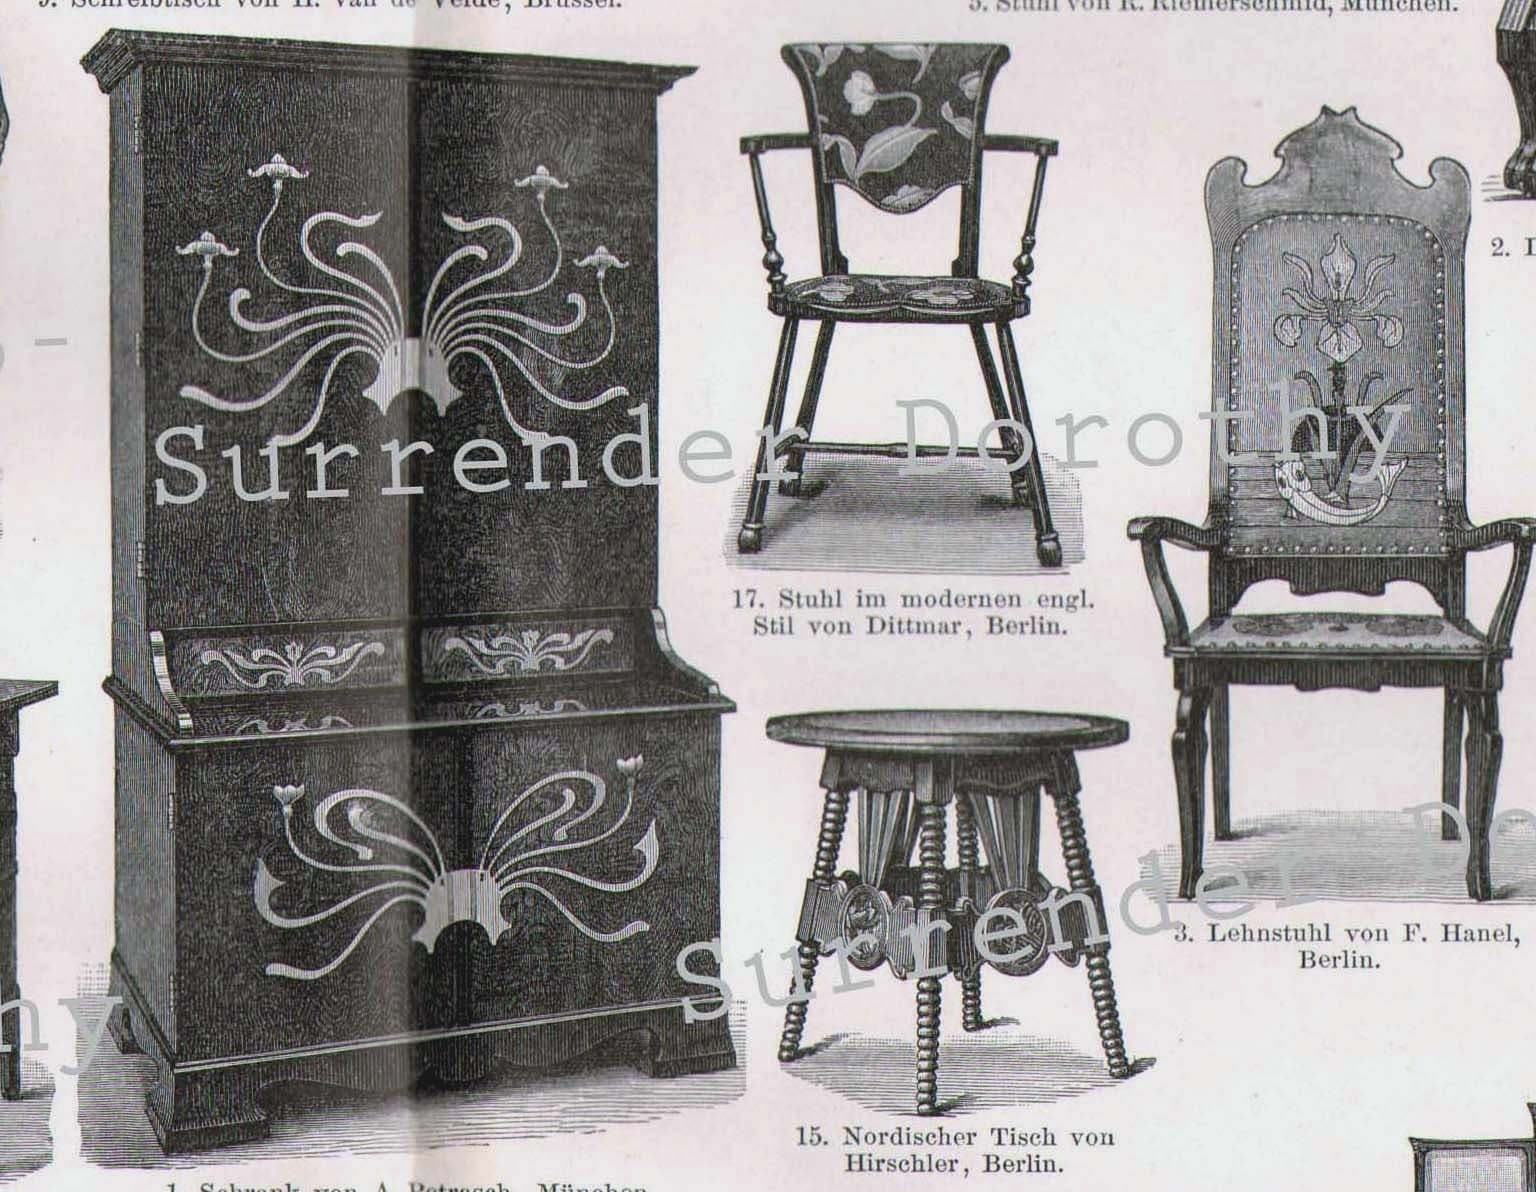 Modern craftsman european furniture victorian by for Contemporary victorian furniture